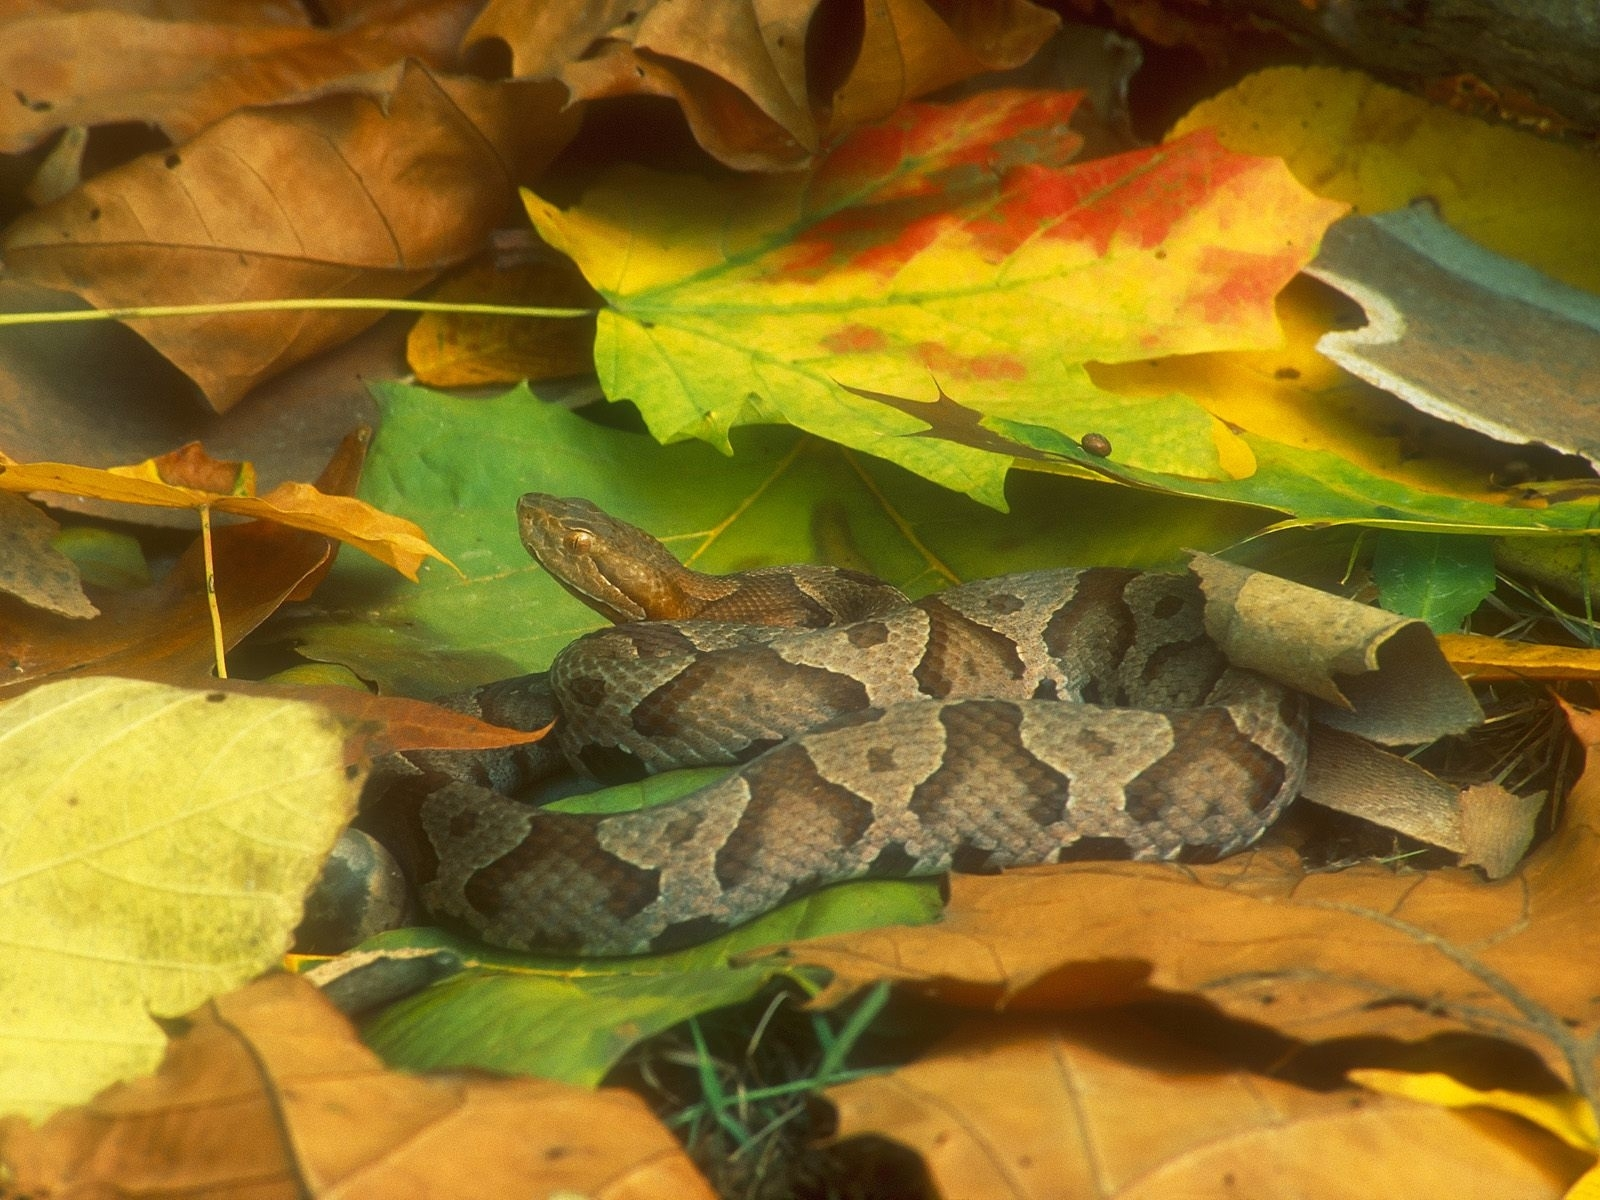 4868 download wallpaper Animals, Snakes screensavers and pictures for free